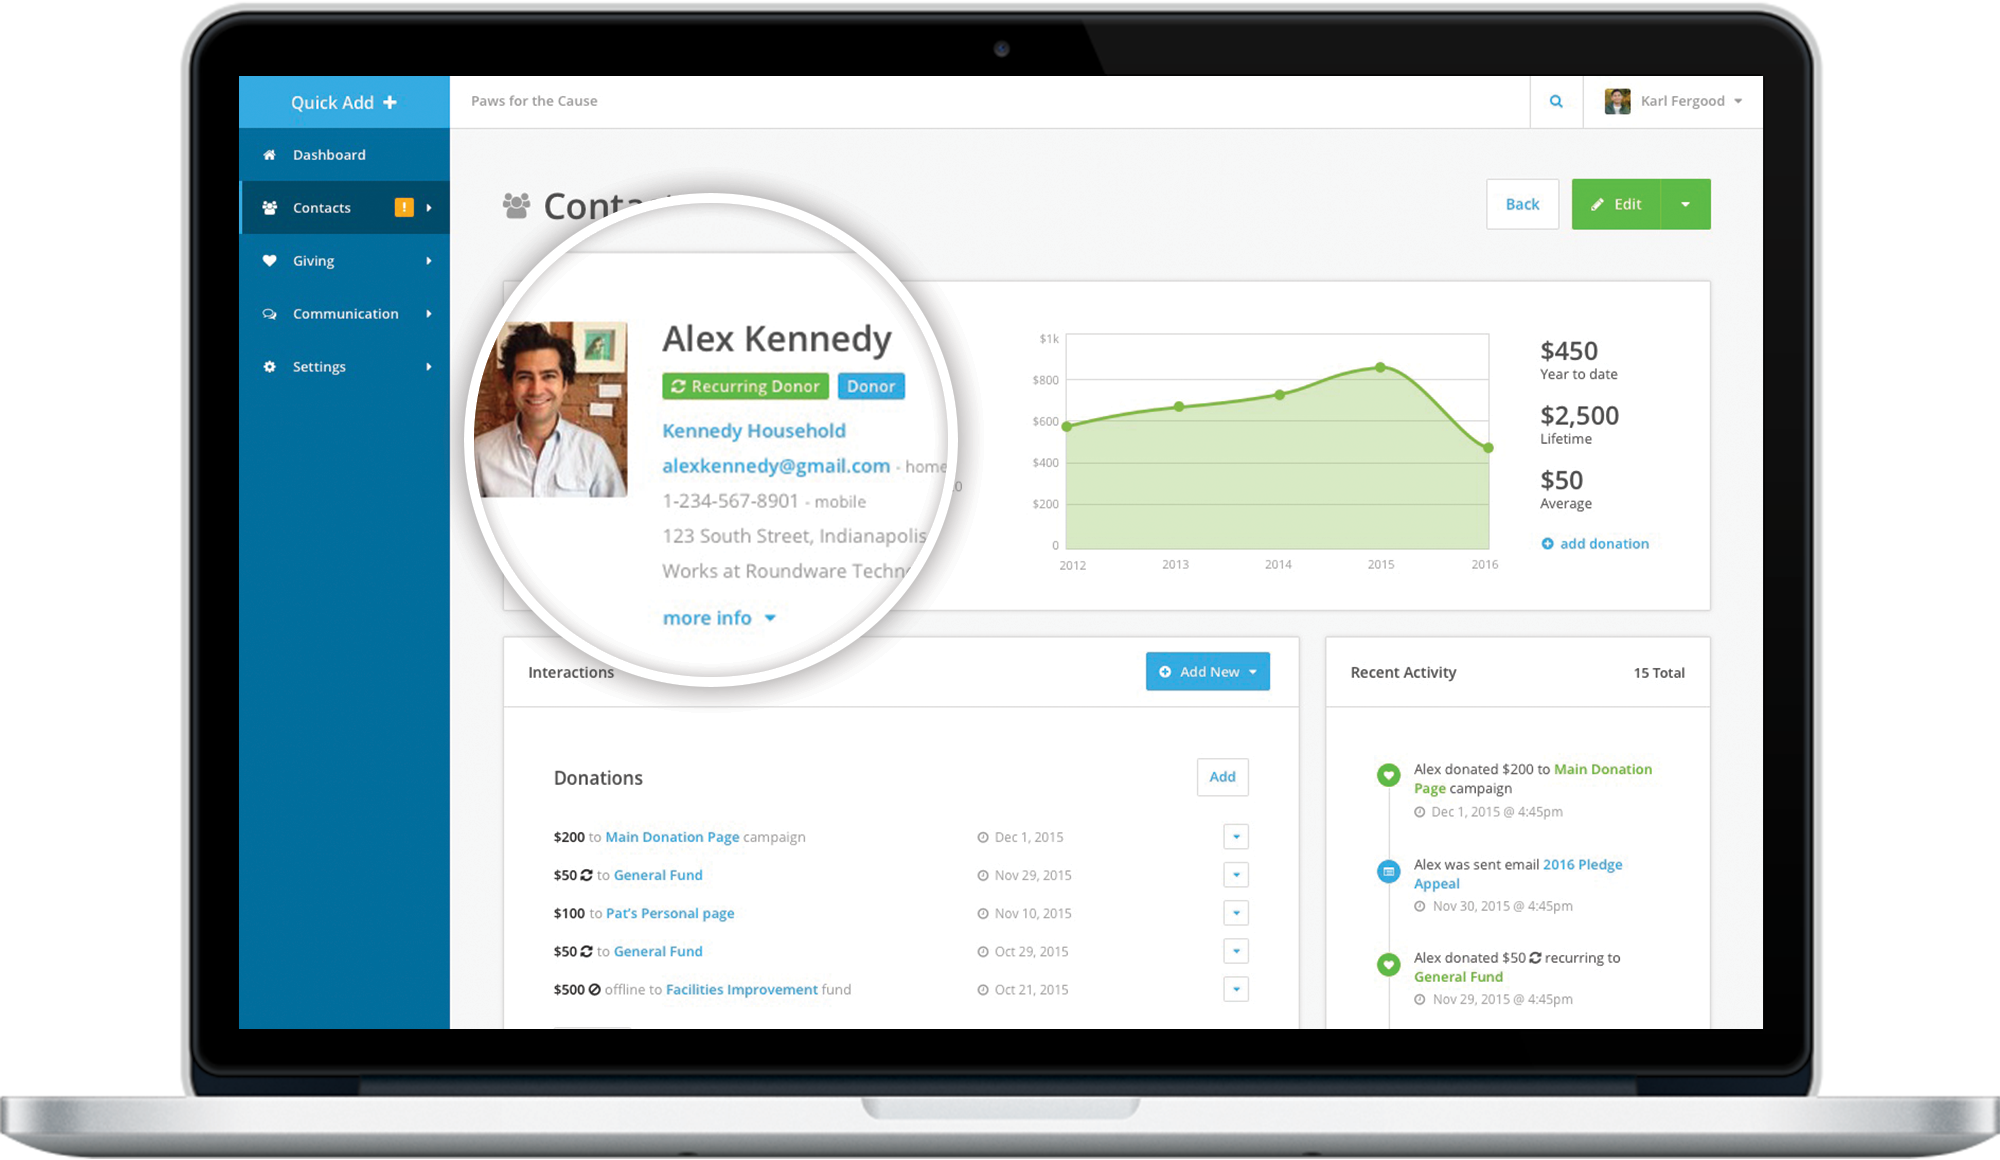 Save 2-3 Hours a Day with Donor Management Software